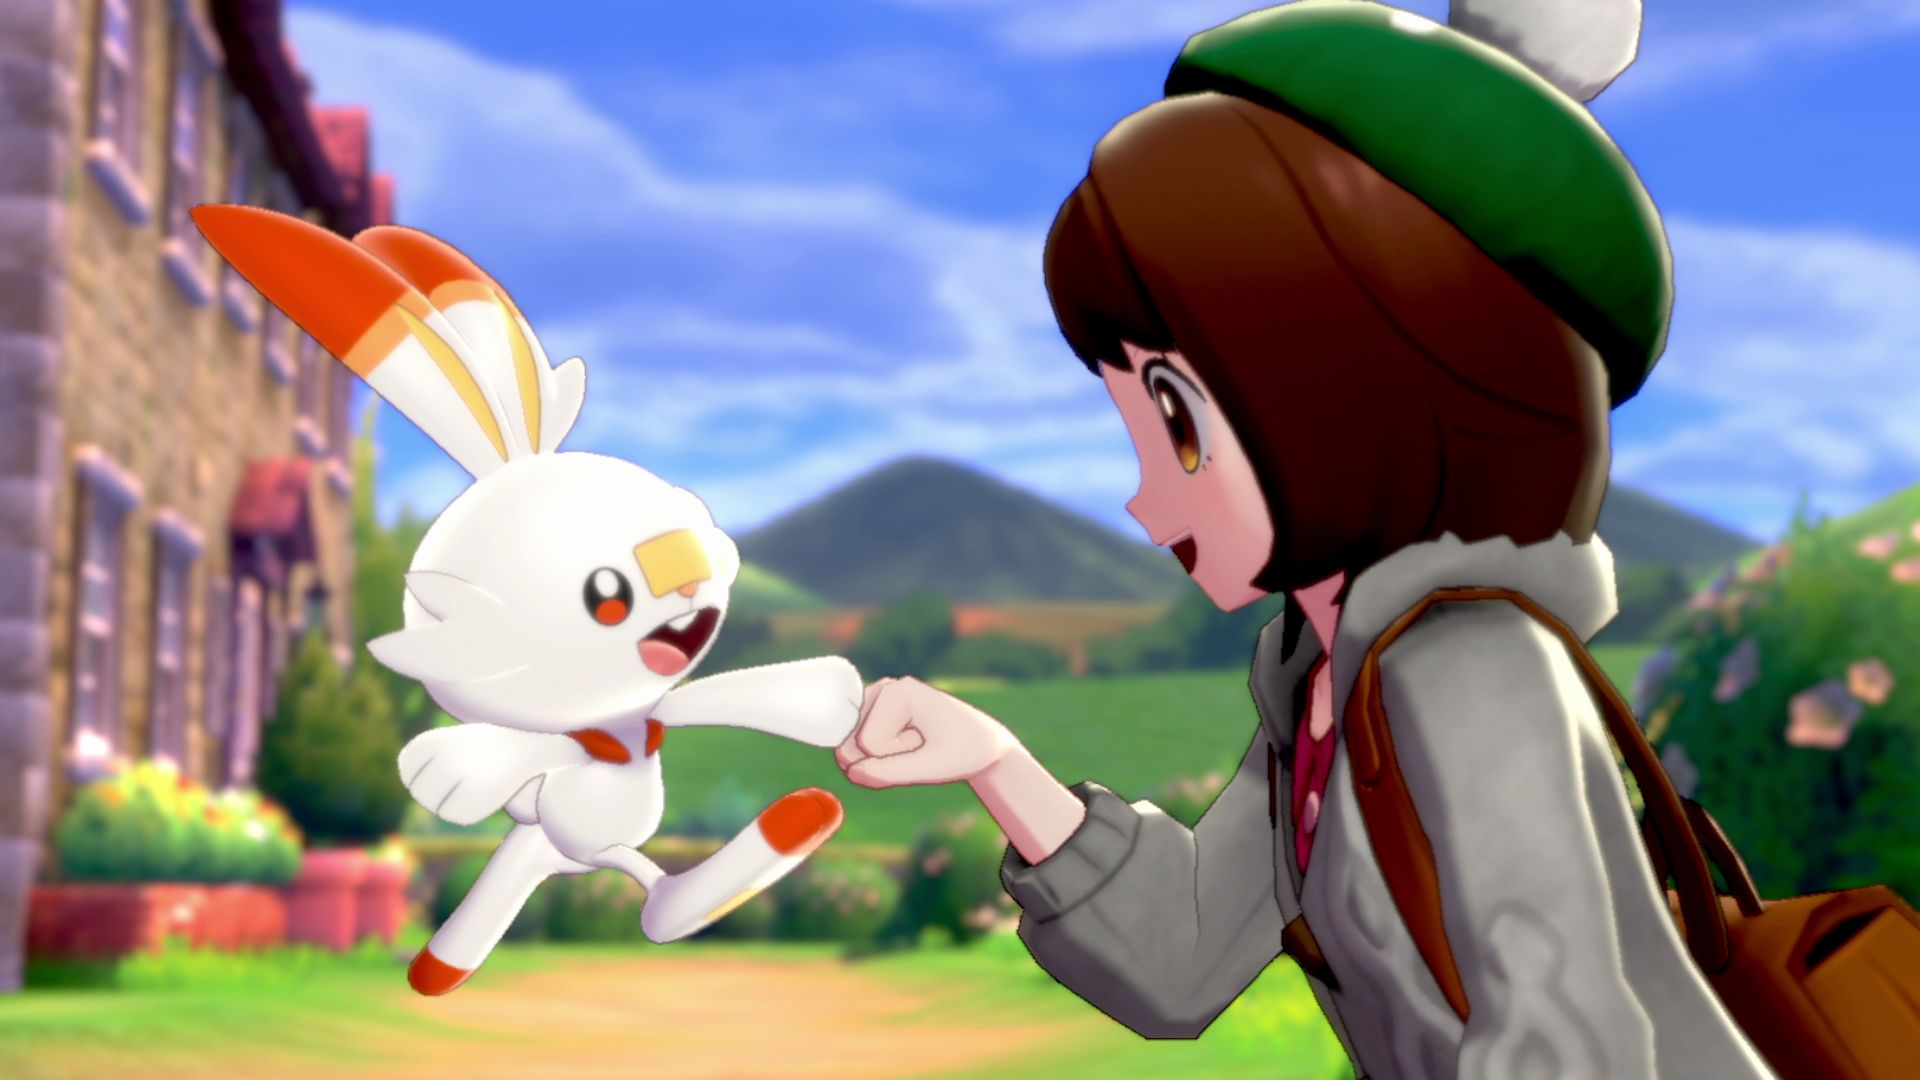 Game Freak says it's not re-using 3DS assets for Pokemon Sword & Shield